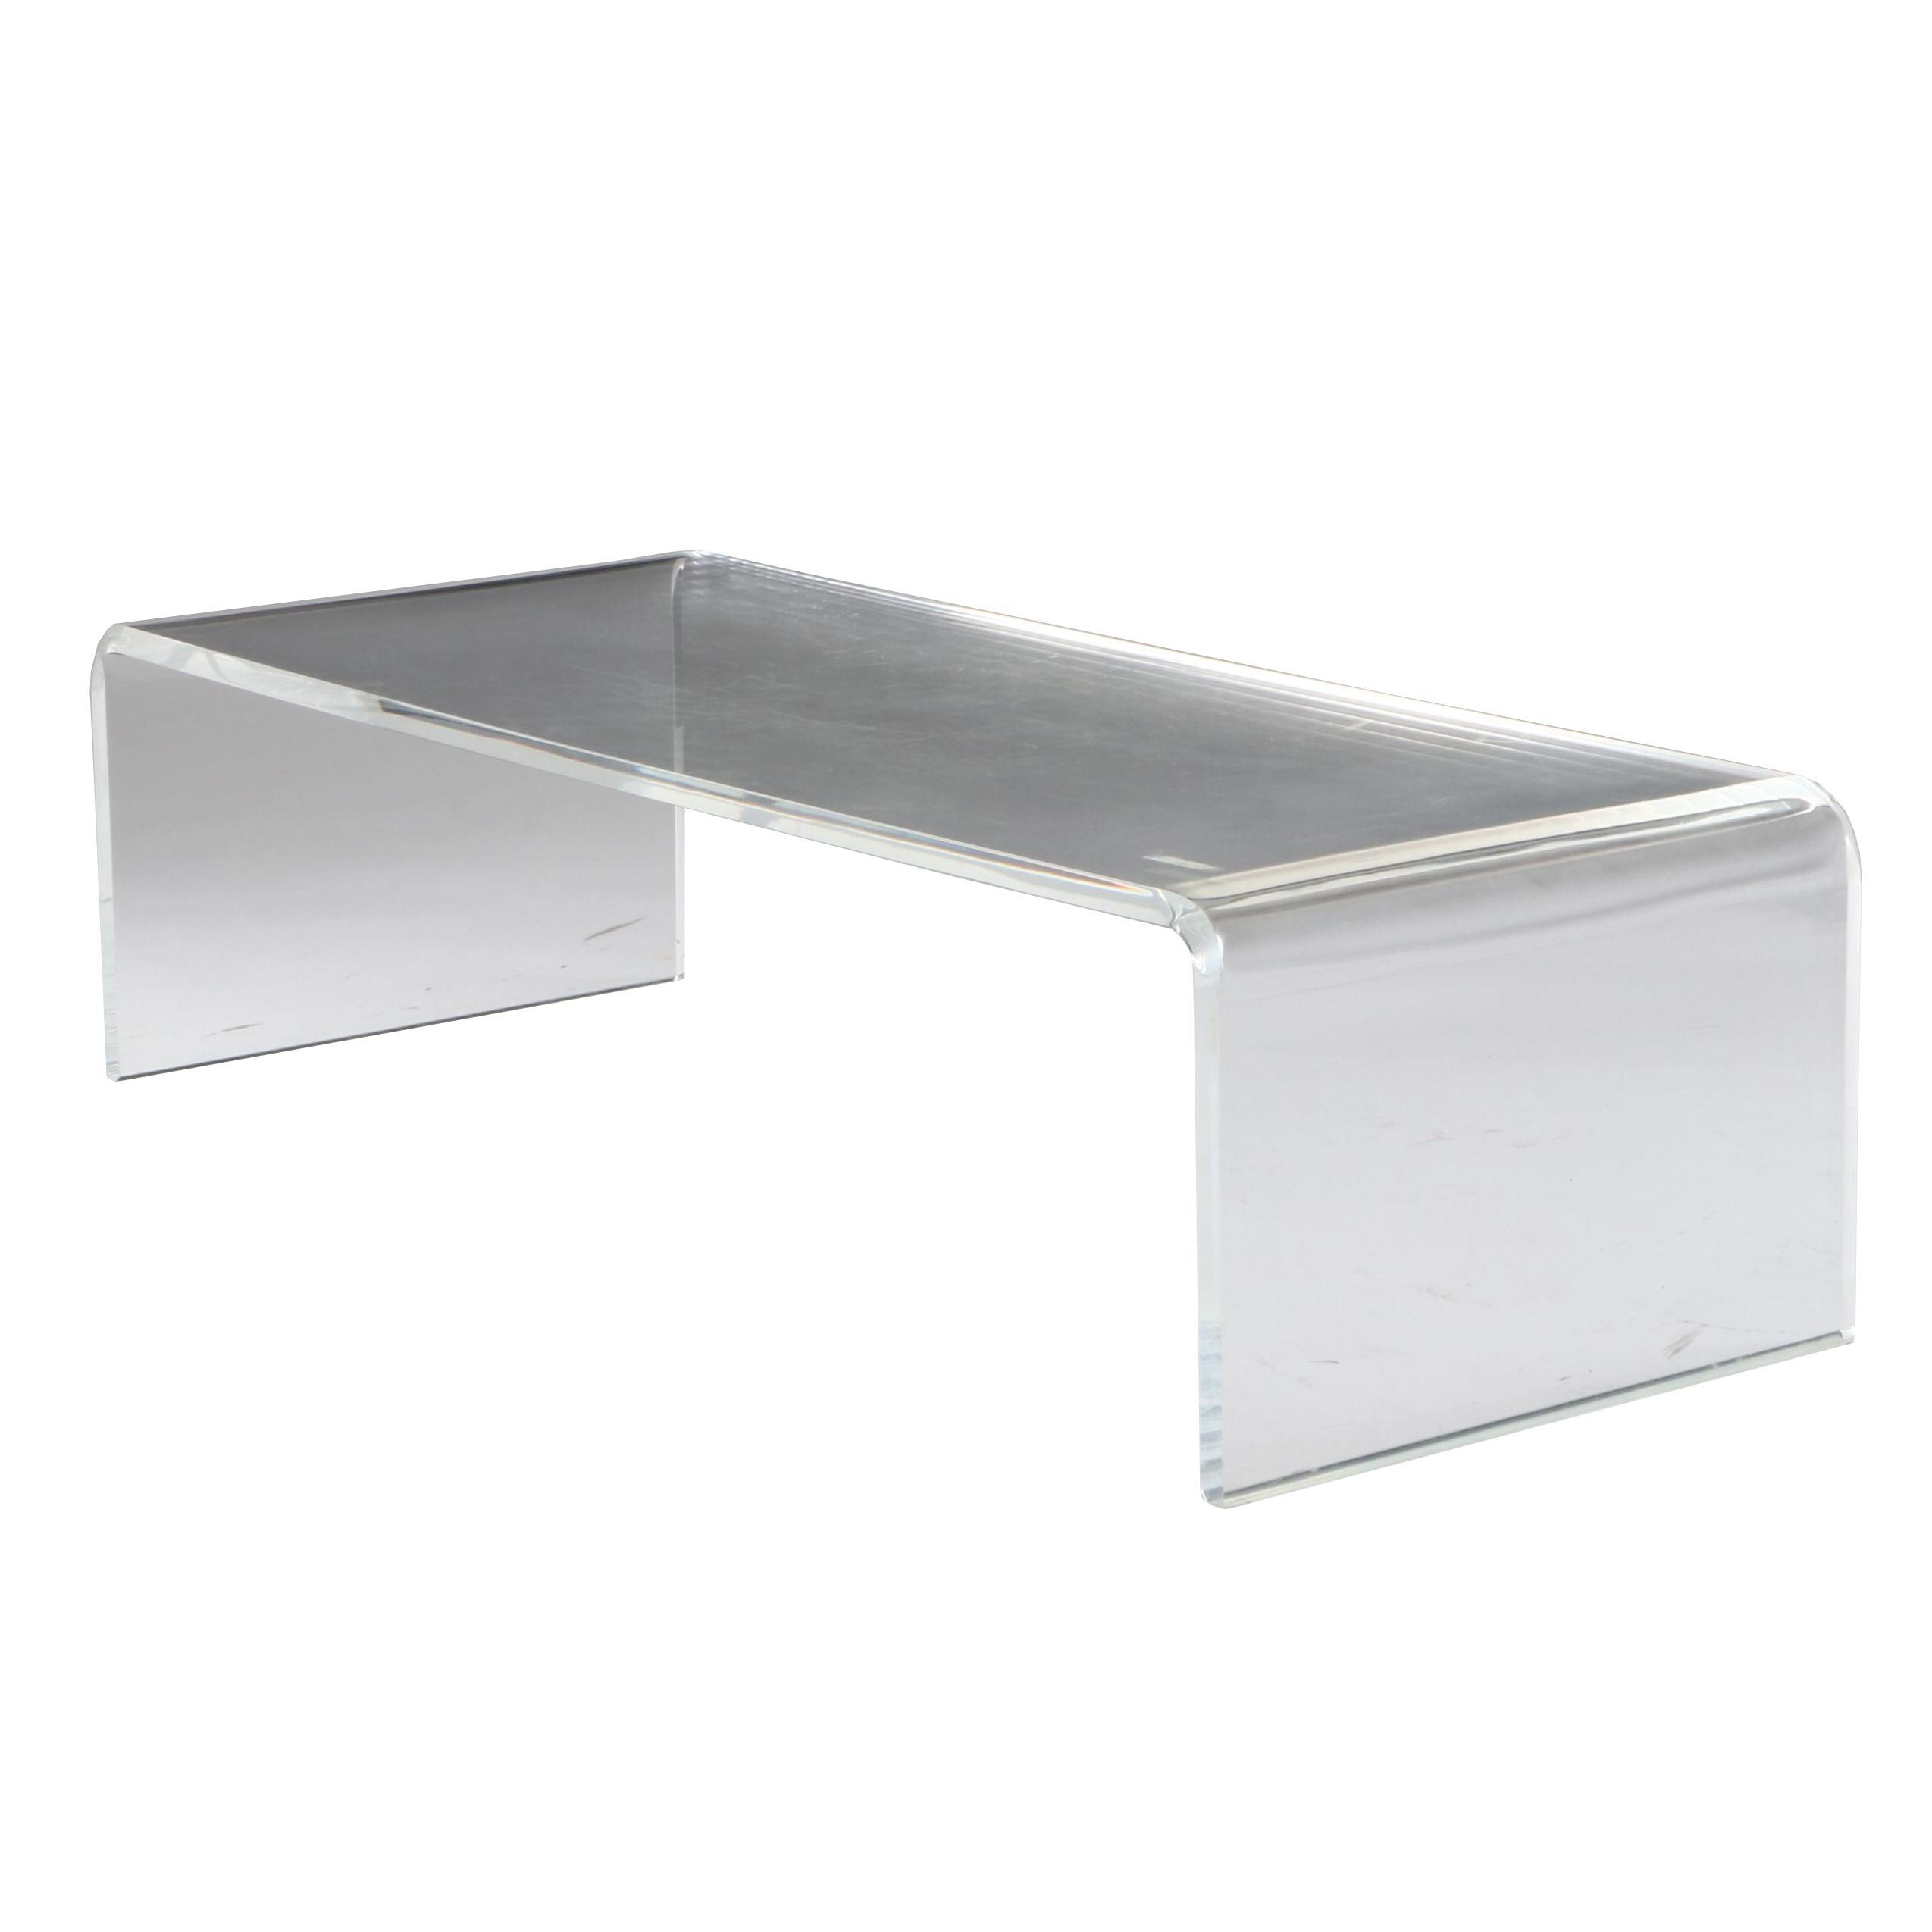 Modernist Clear Acrylic Coffee Table, Late 20th Century